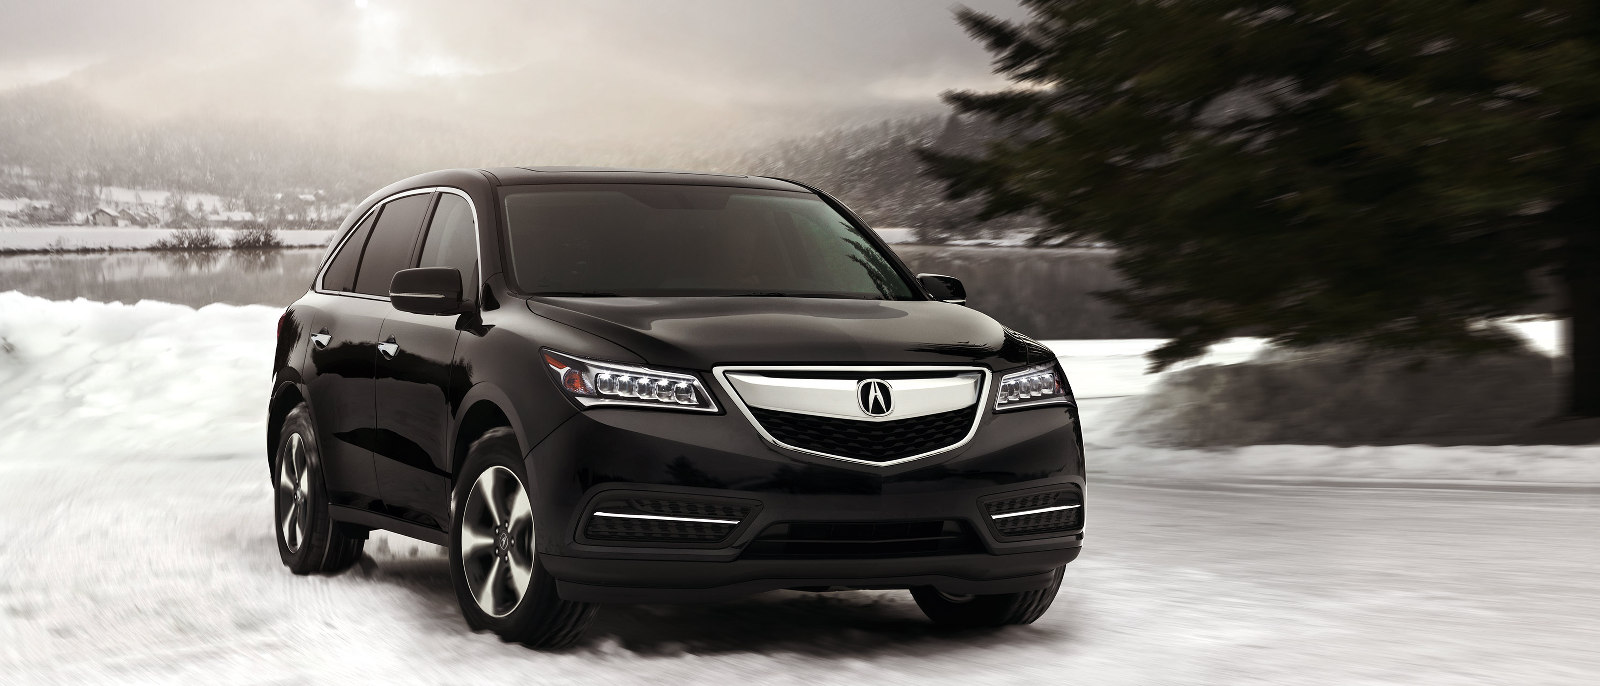 2015 Acura MDX - Price, Photos, Reviews & Features